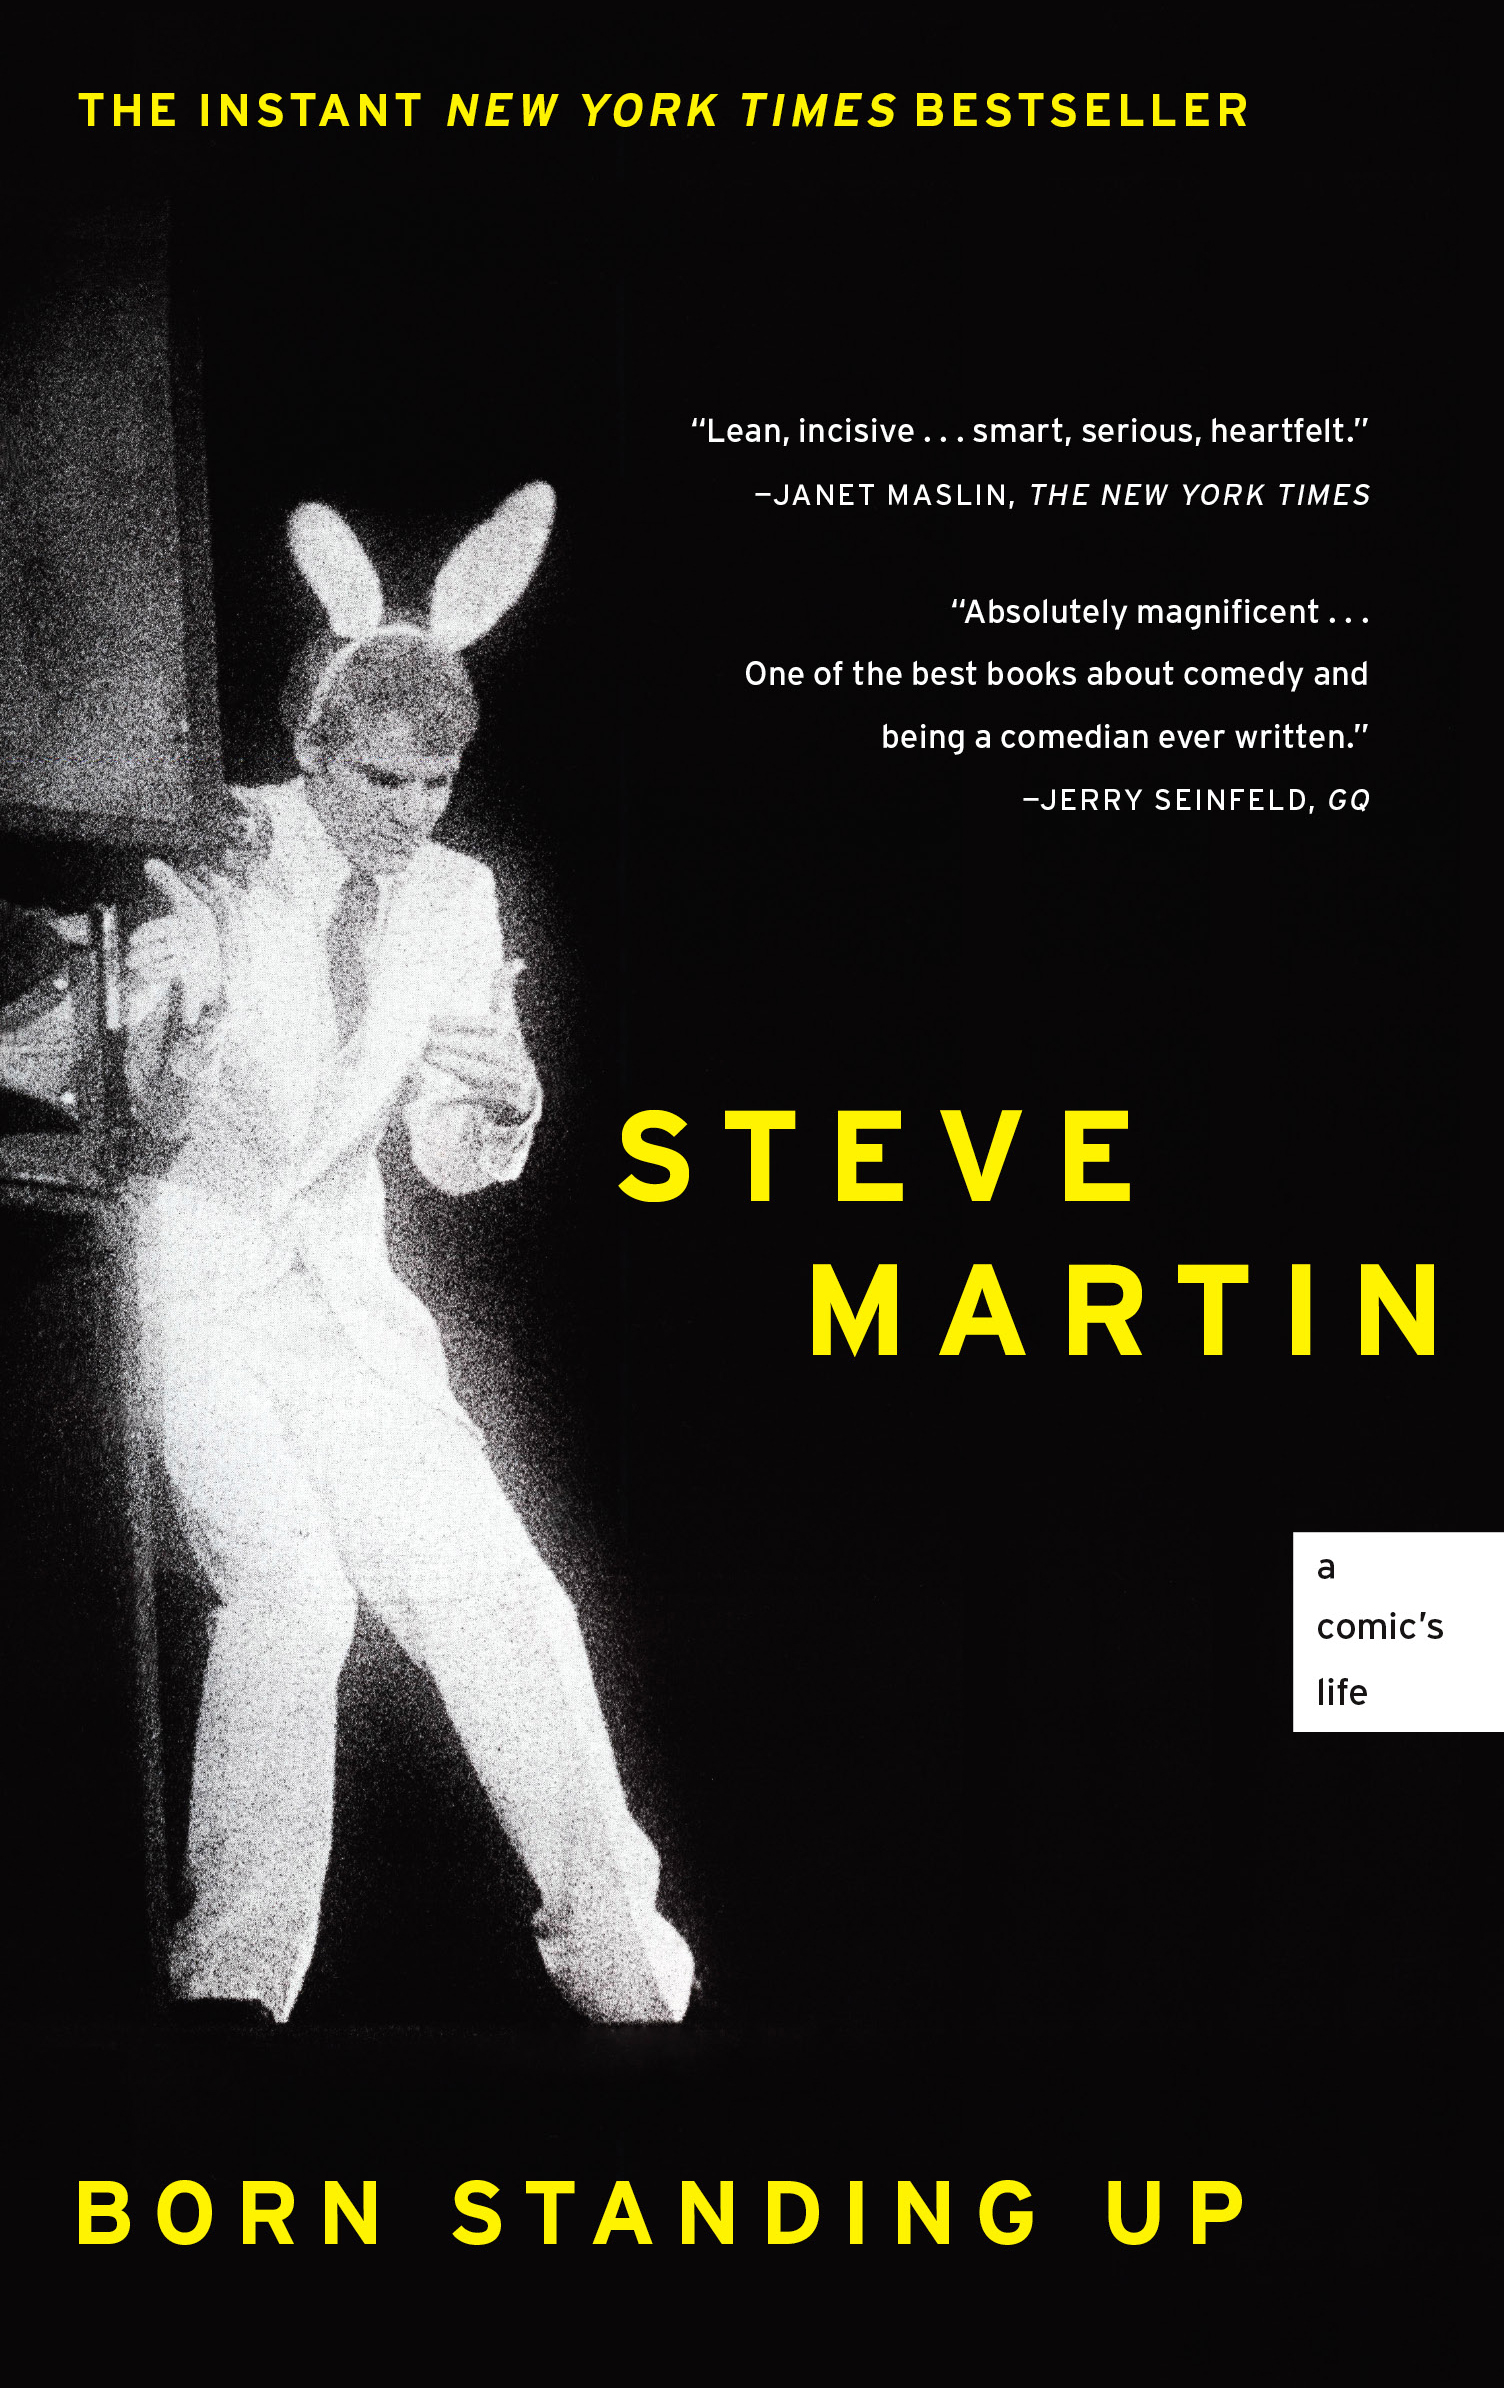 2. 'Born Standing Up' by Steve Martin